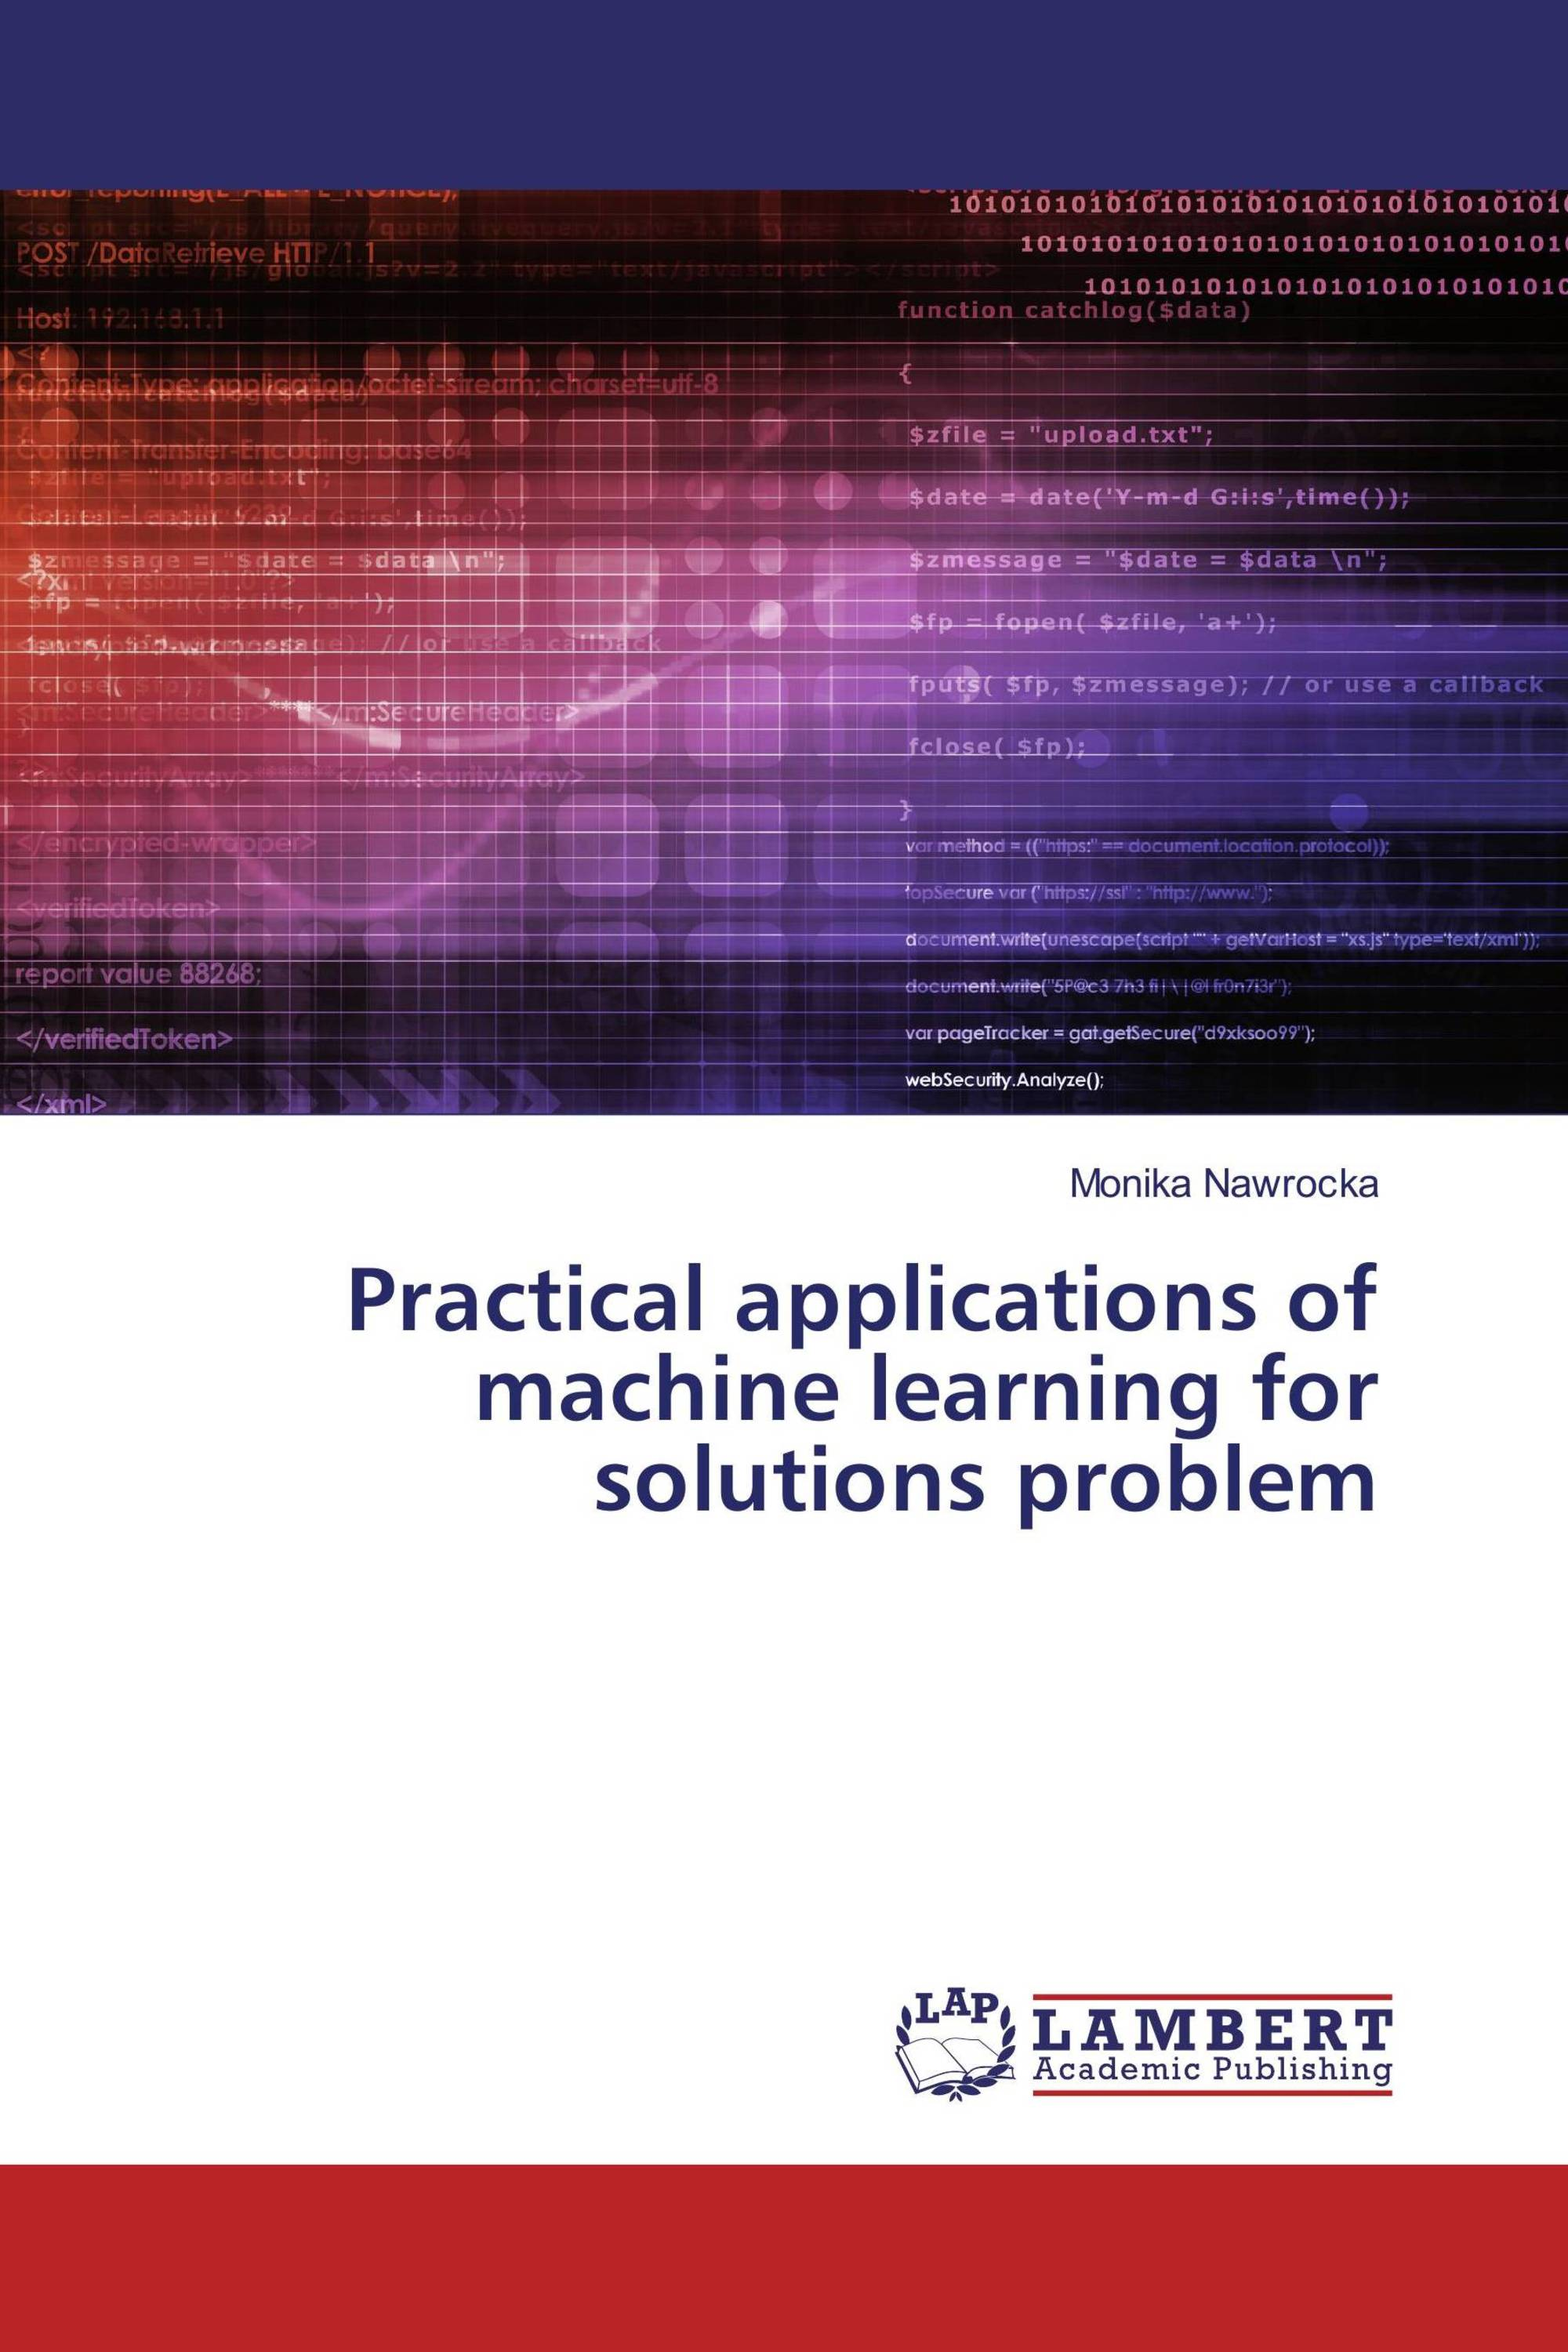 machine learning problems and solutions